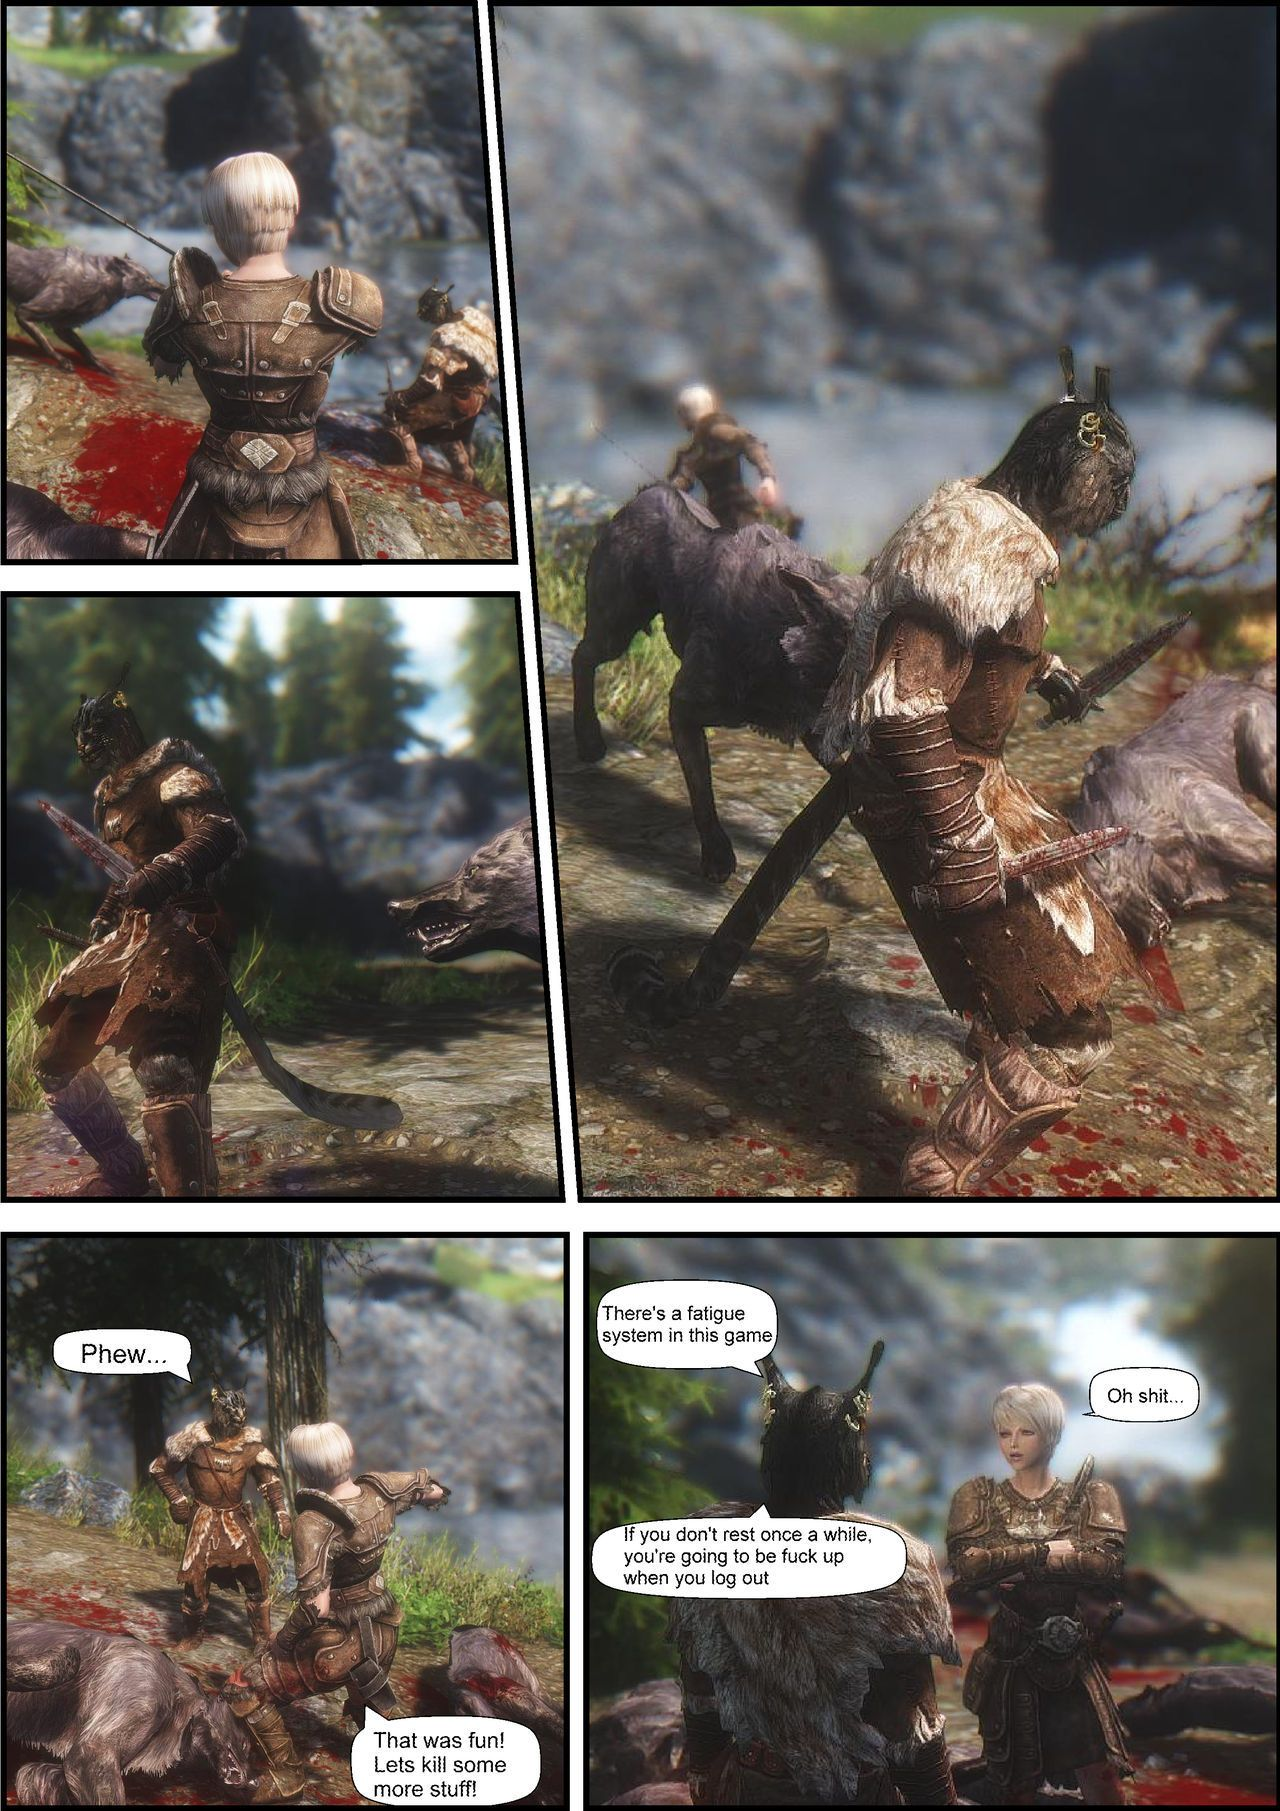 Skyrim of 2074: First time